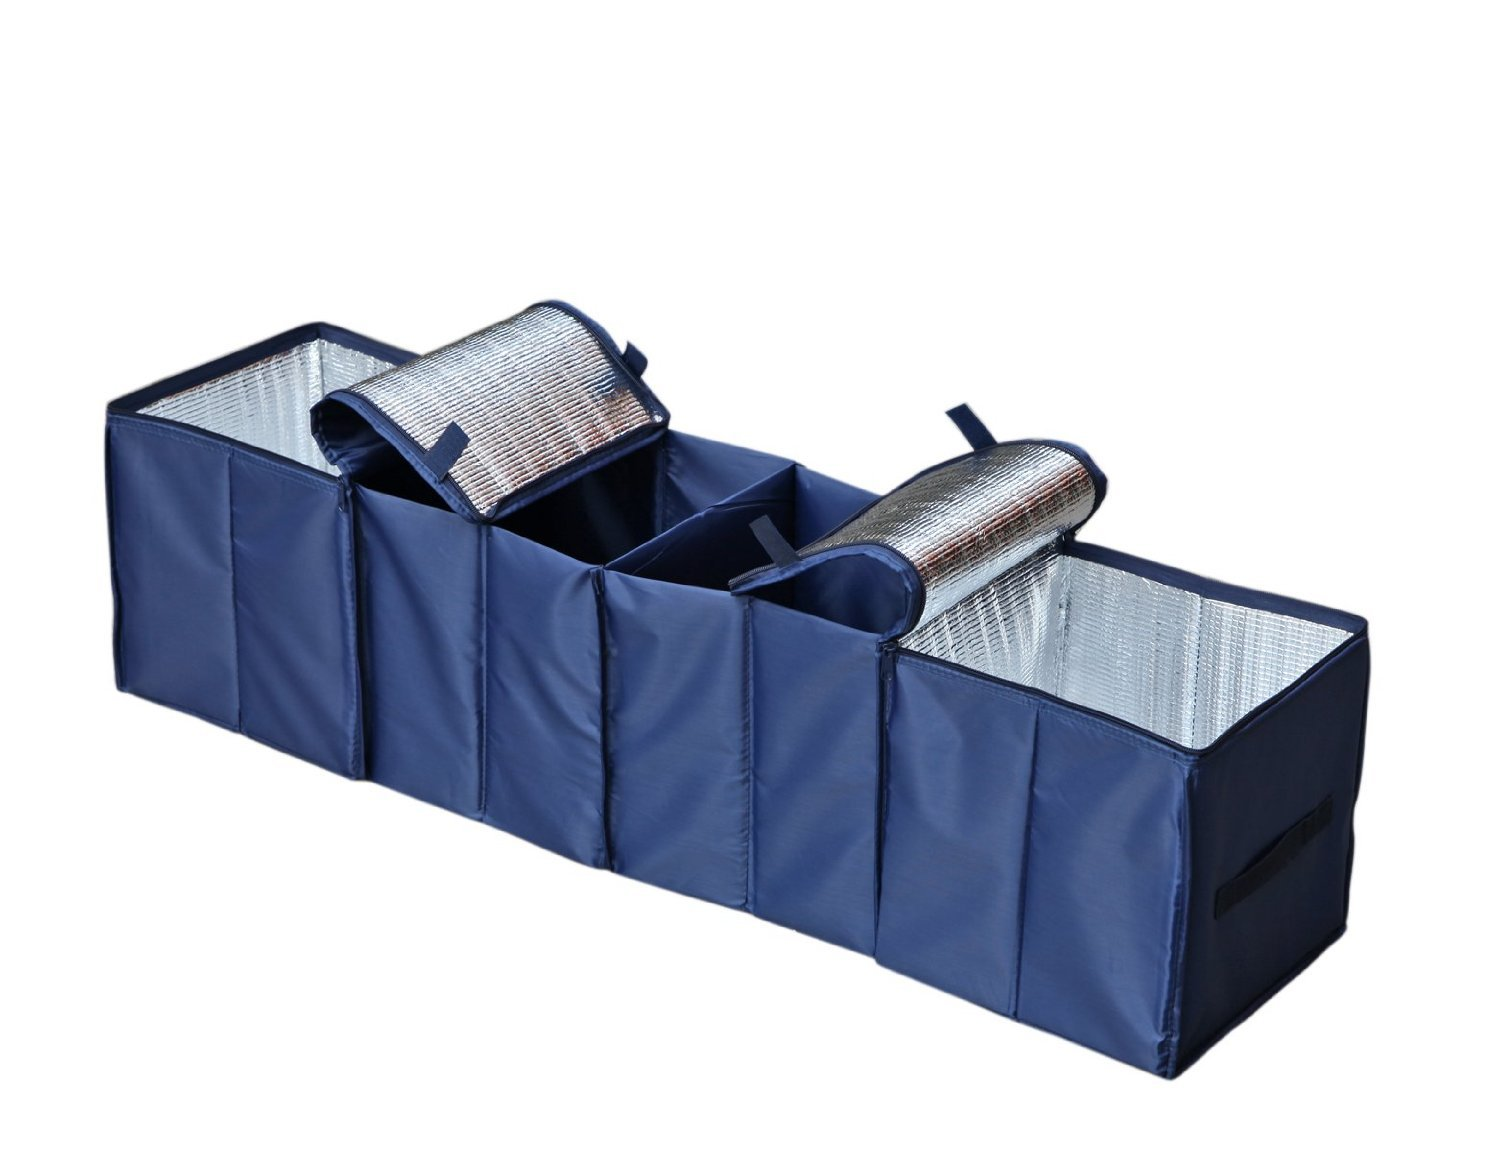 Autoark Foldable Multi Compartment Fabric Car Truck Van SUV Storage Basket Trunk Organizer and Cooler Set,Navy Blue,AK-009 FBA/_AK-009